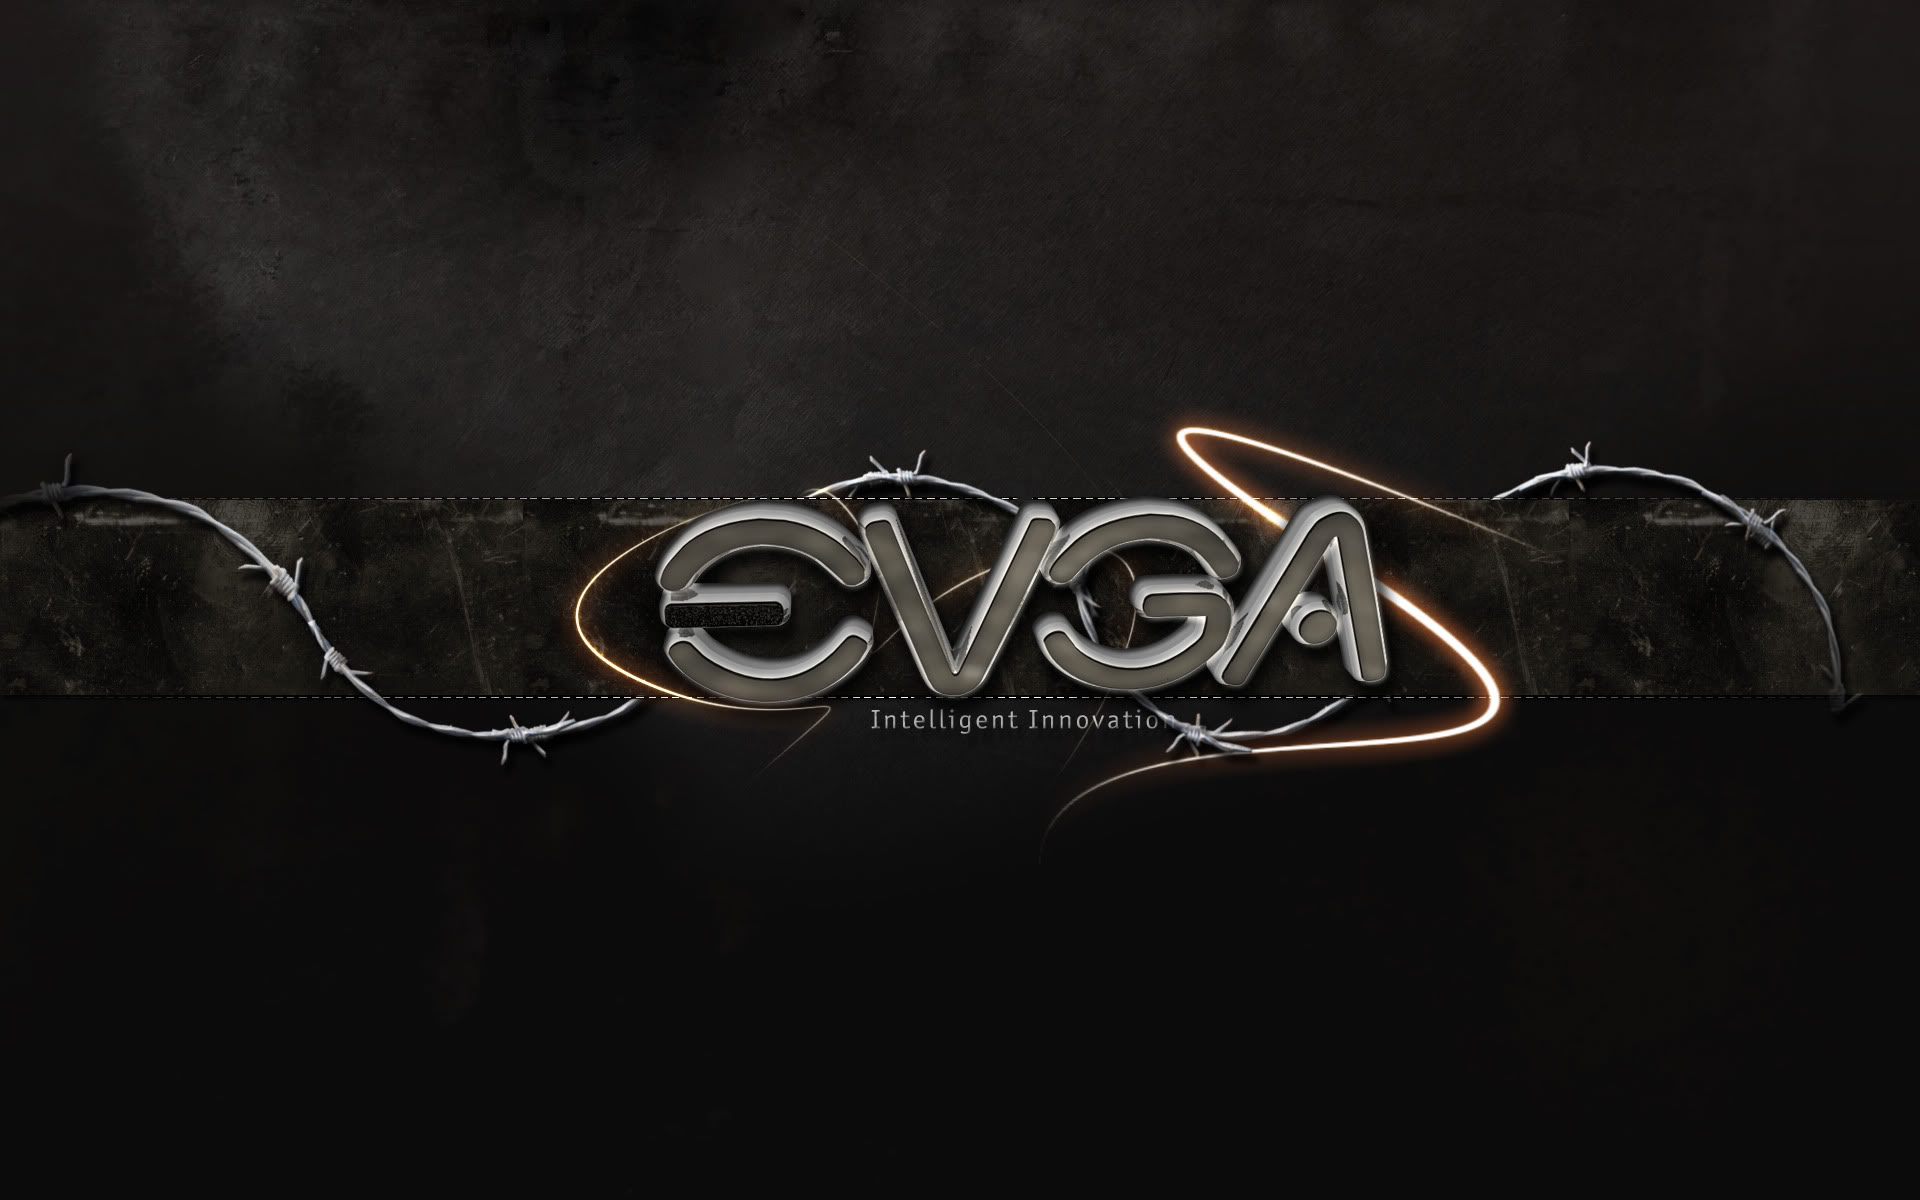 EVGA wallpapers + avatars - EVGA Forums